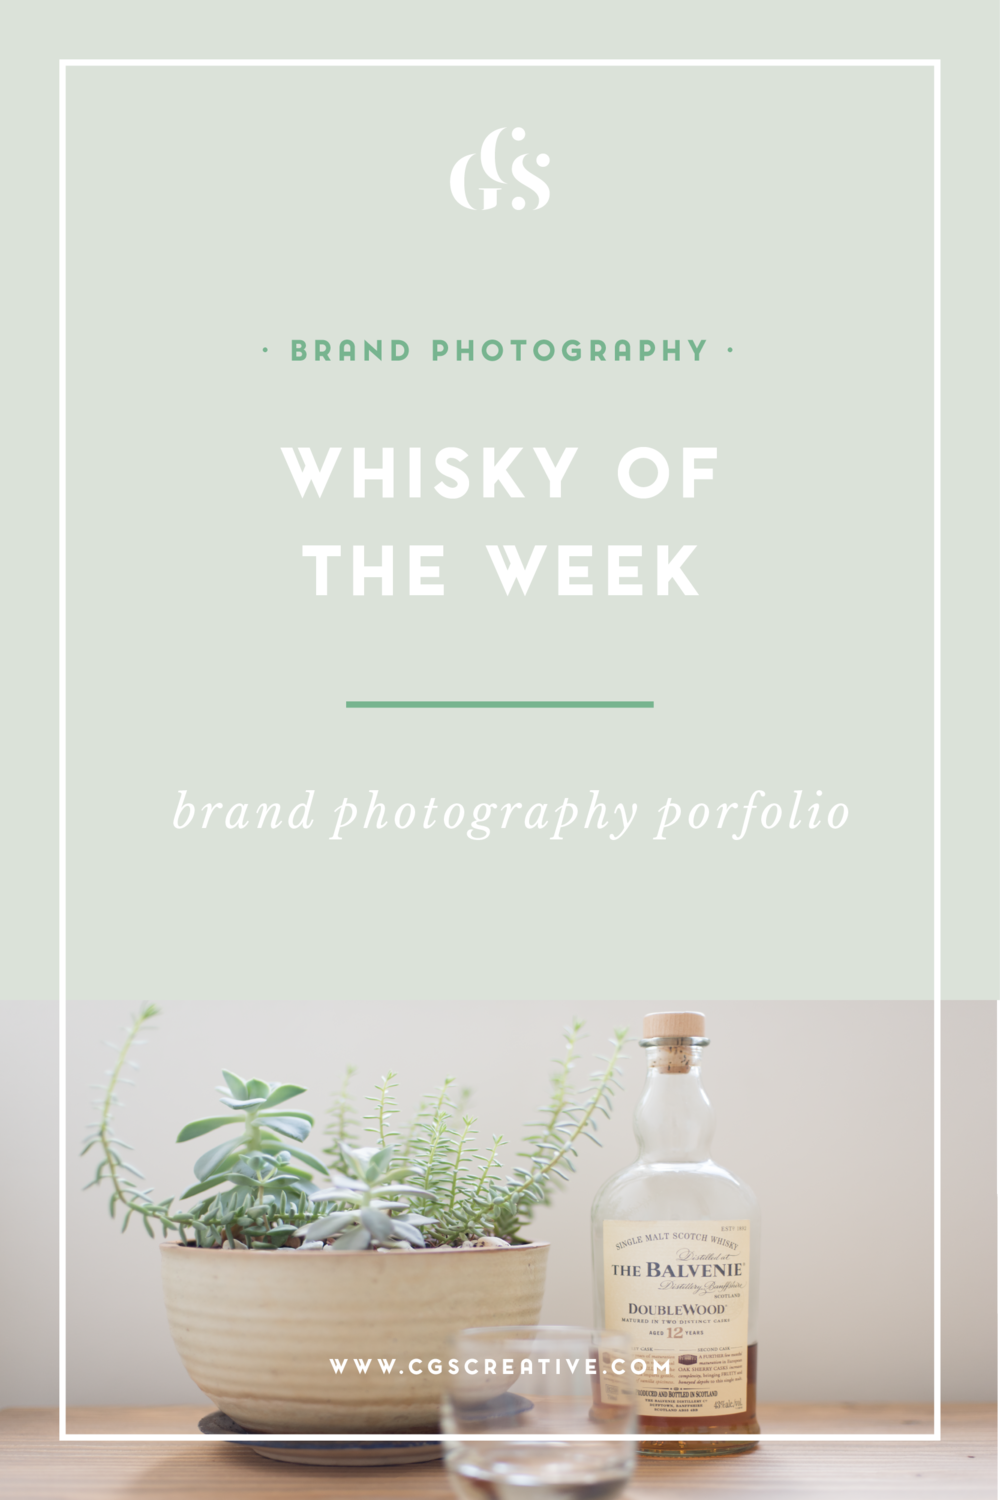 Brand Photography for Whisky Blog Whisky Of the Week by Roxy Hutton of CGScreative-01.png